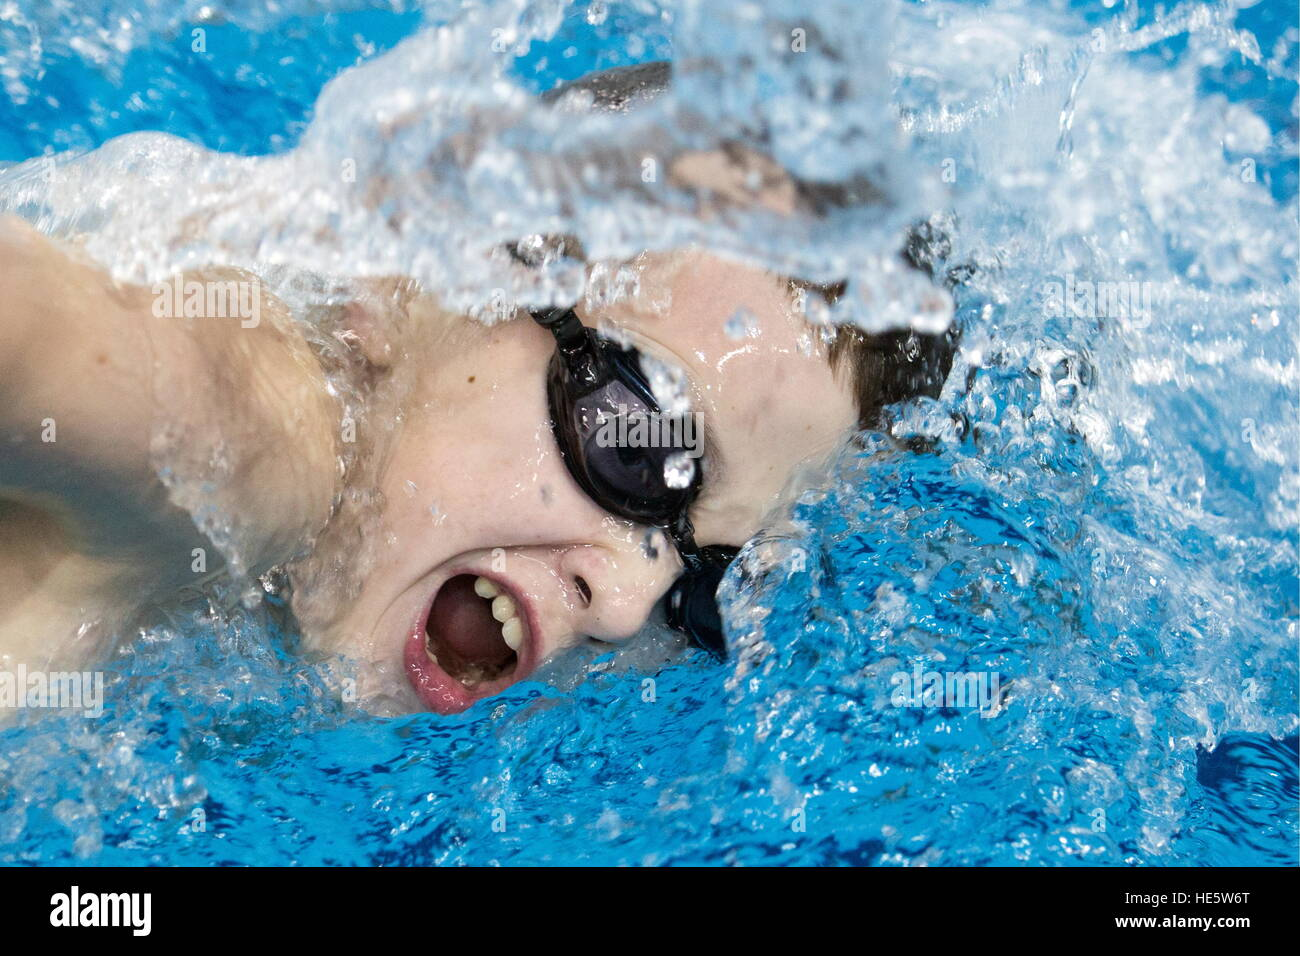 Omsk, Russia. 16th Dec, 2016. A participant in a swimming competition at the Omsk Cadet Corps. © Dmitry Feoktistov/TASS/Alamy Stock Foto